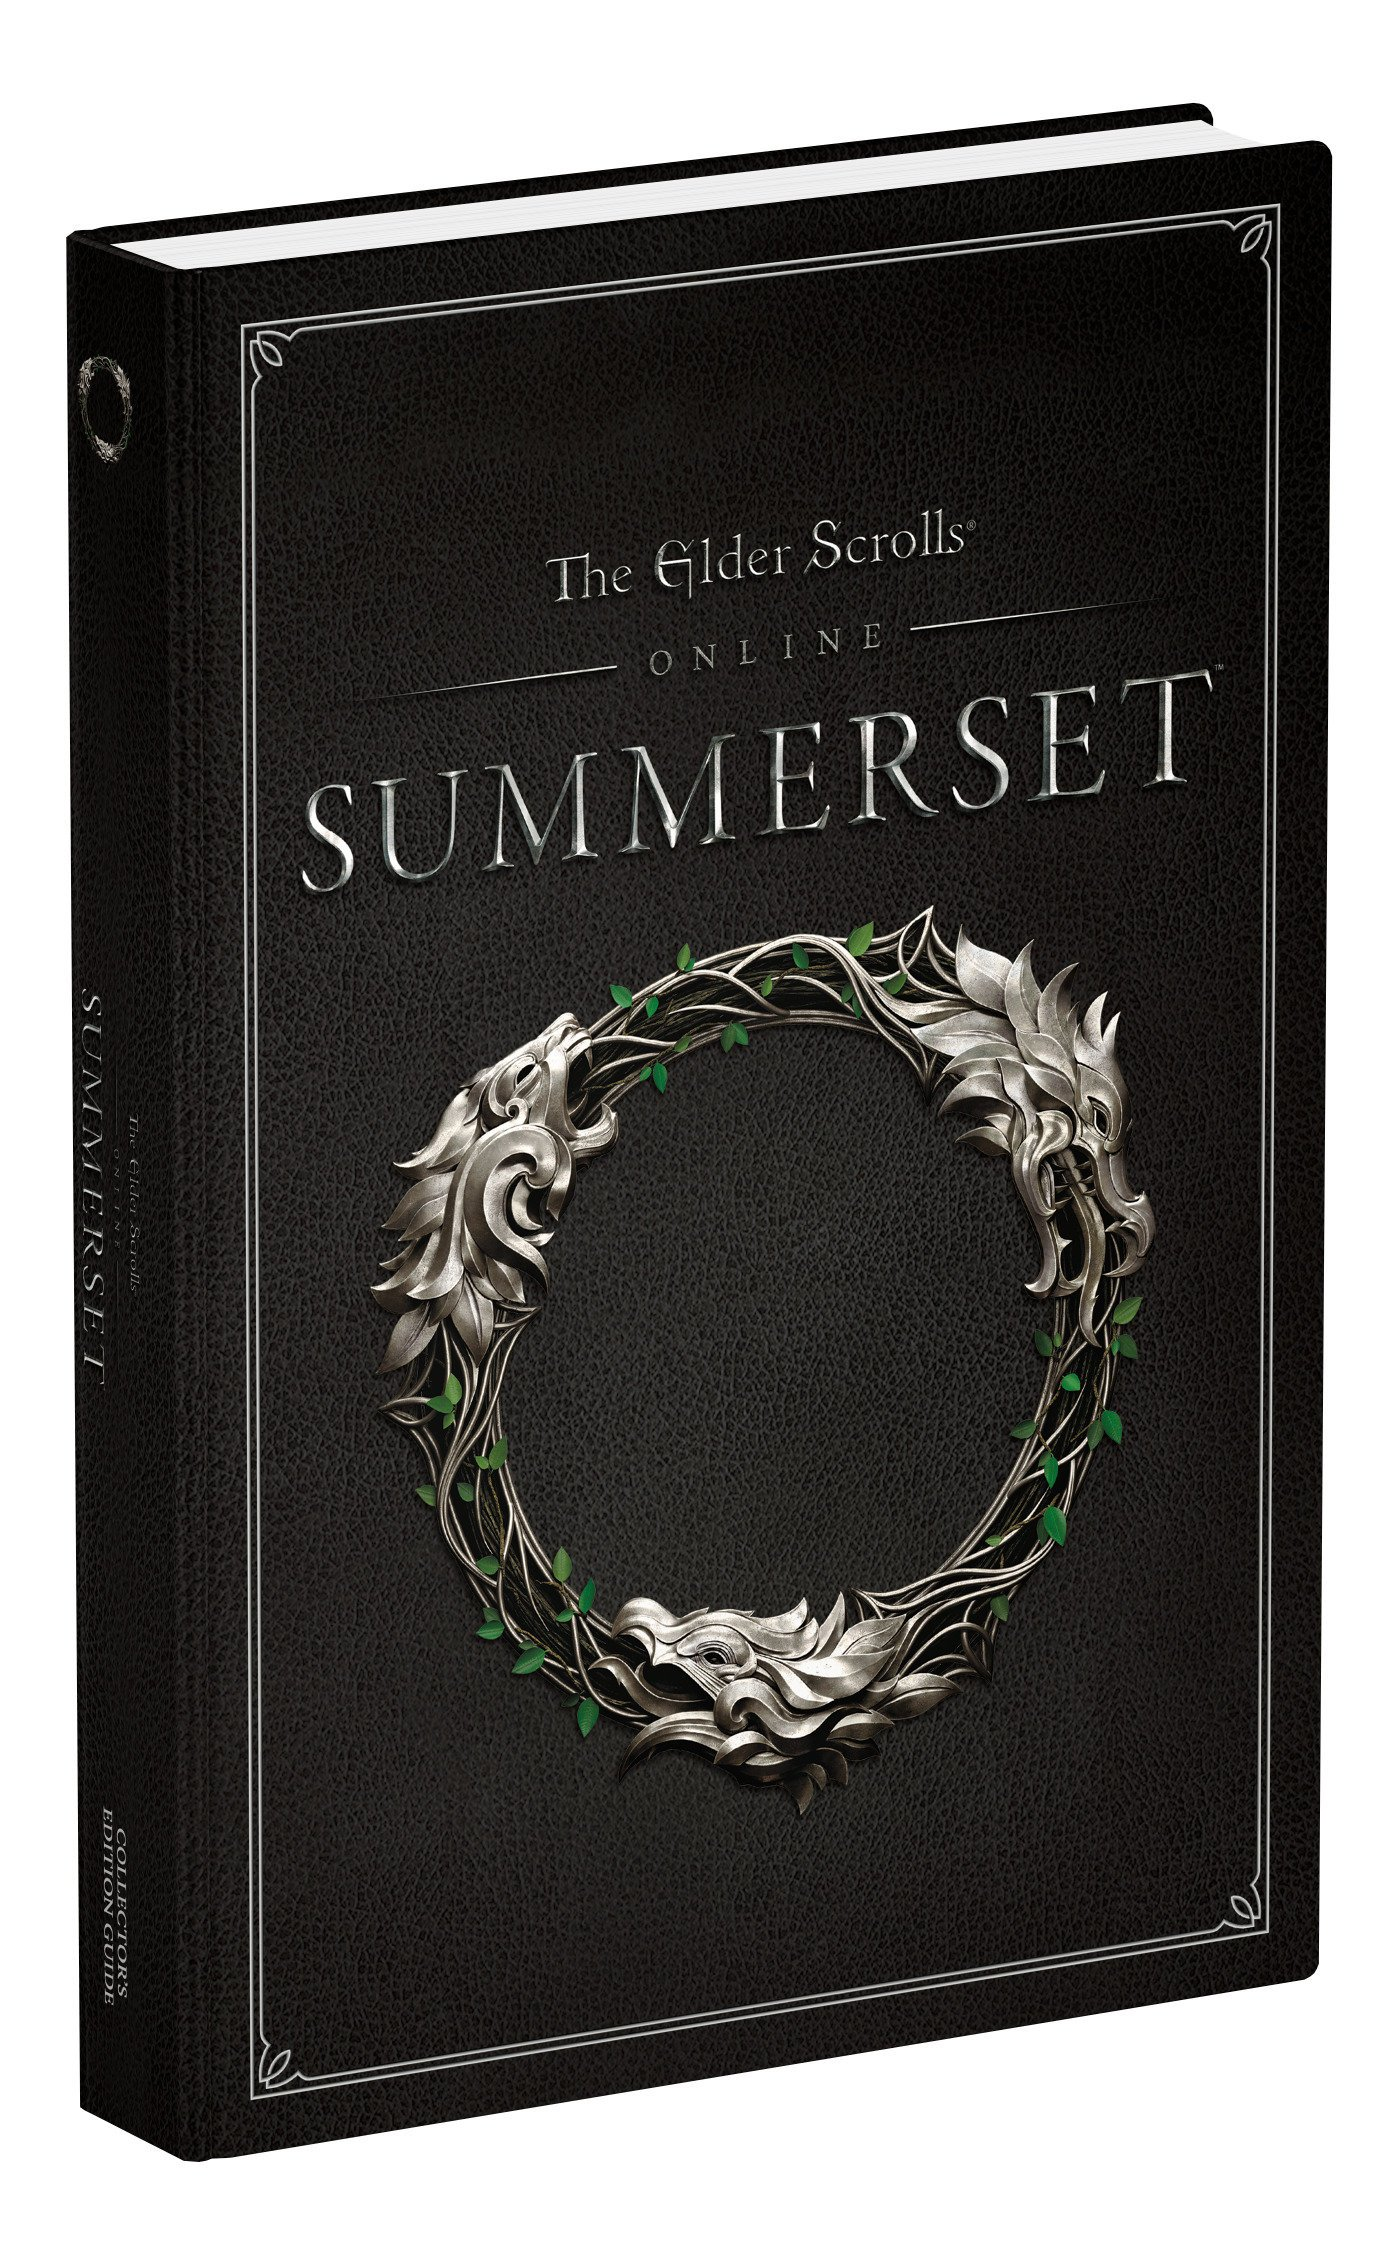 Download The Elder Scrolls Online: Summerset: Official Collector's Edition Guide 